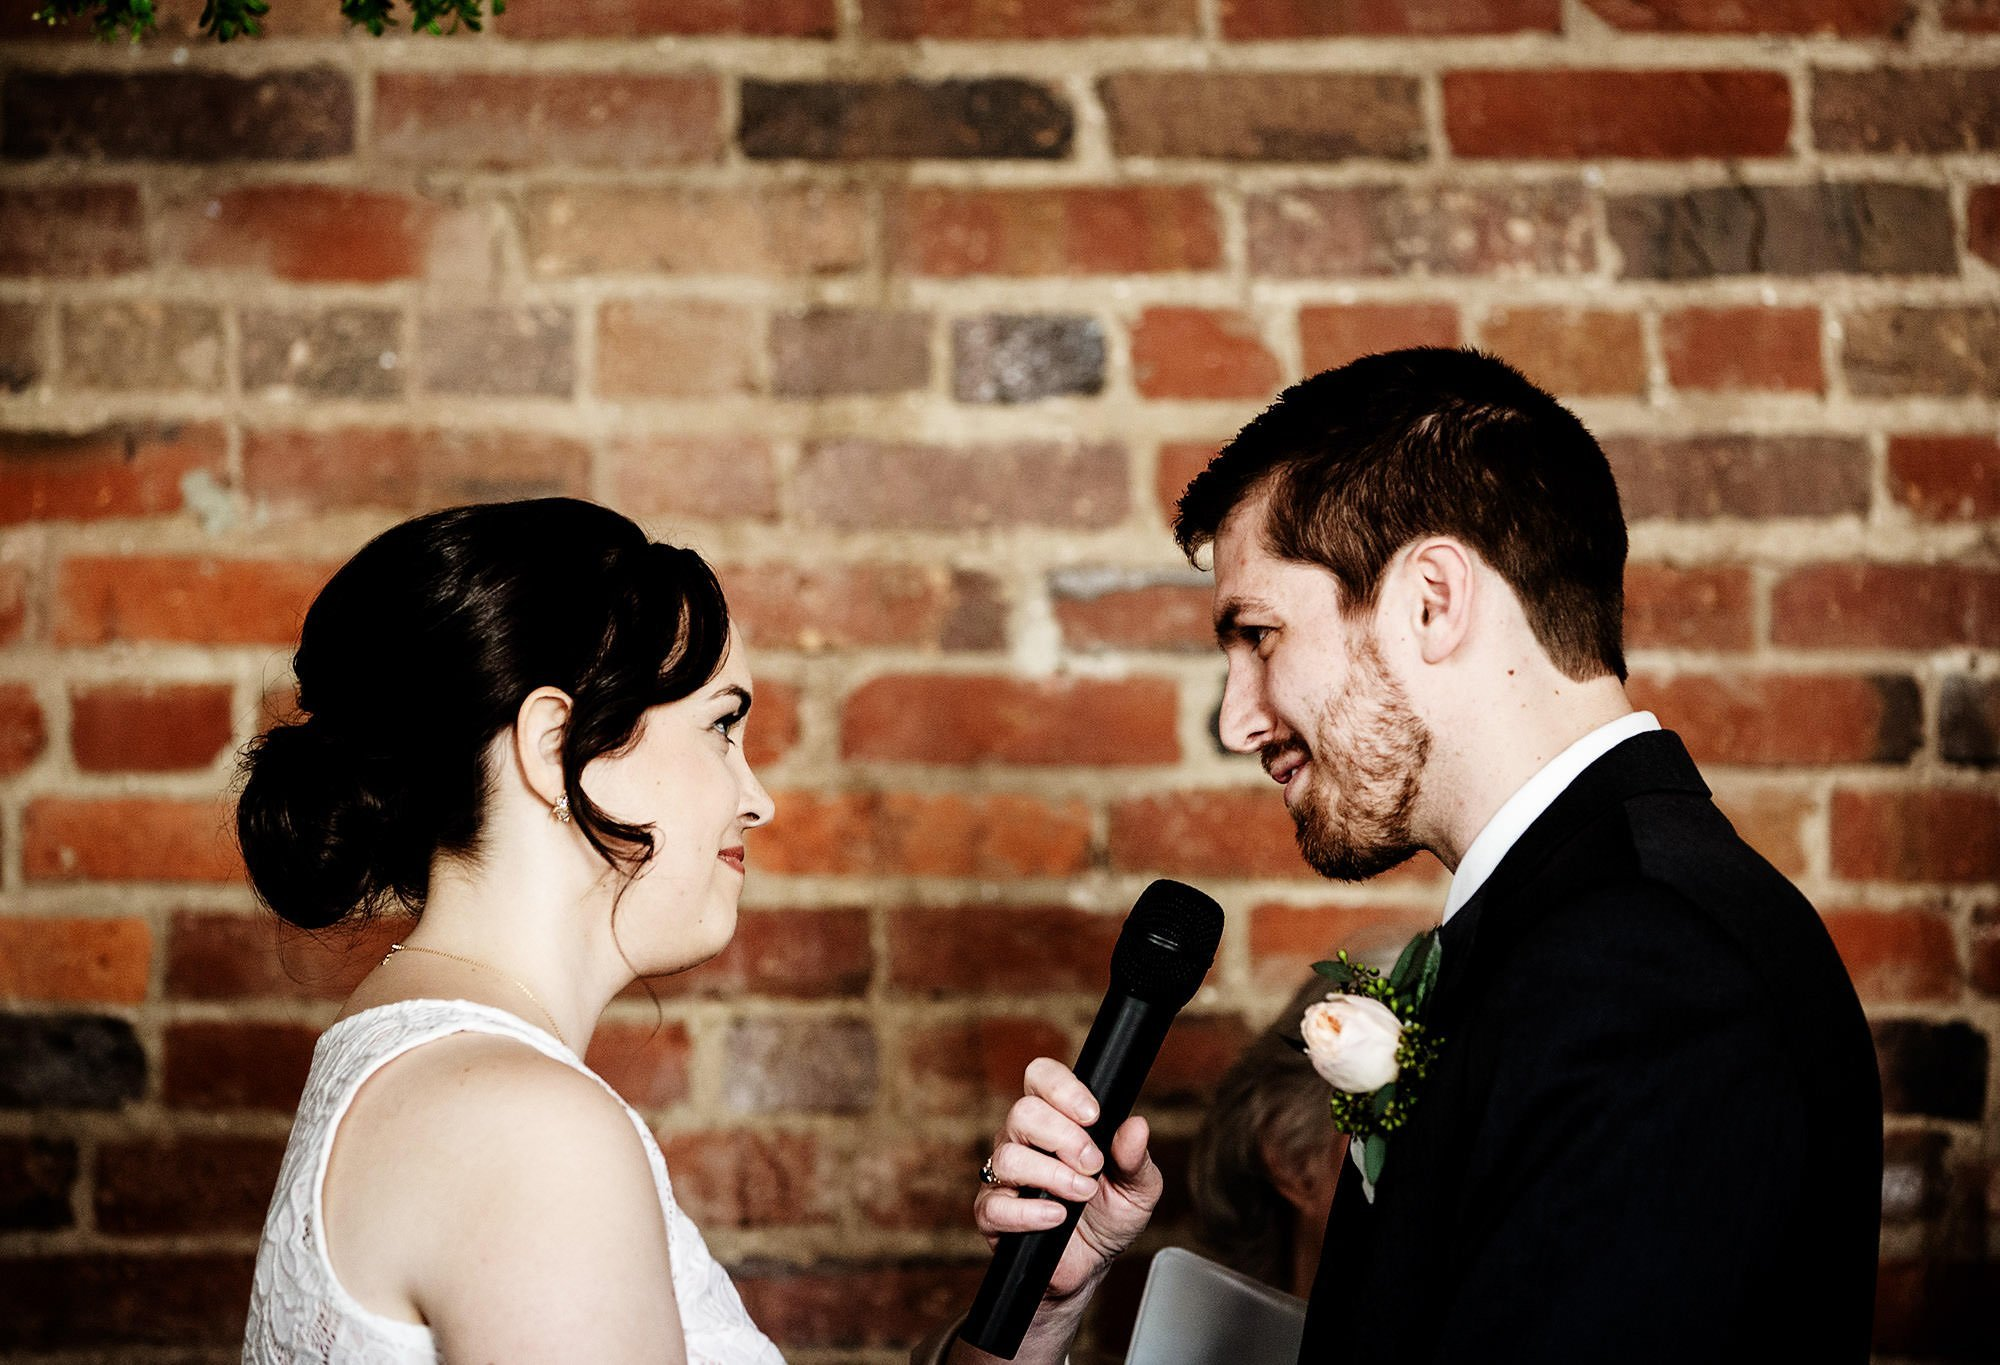 Loft at 600 F Wedding  I  The groom shares his vows.